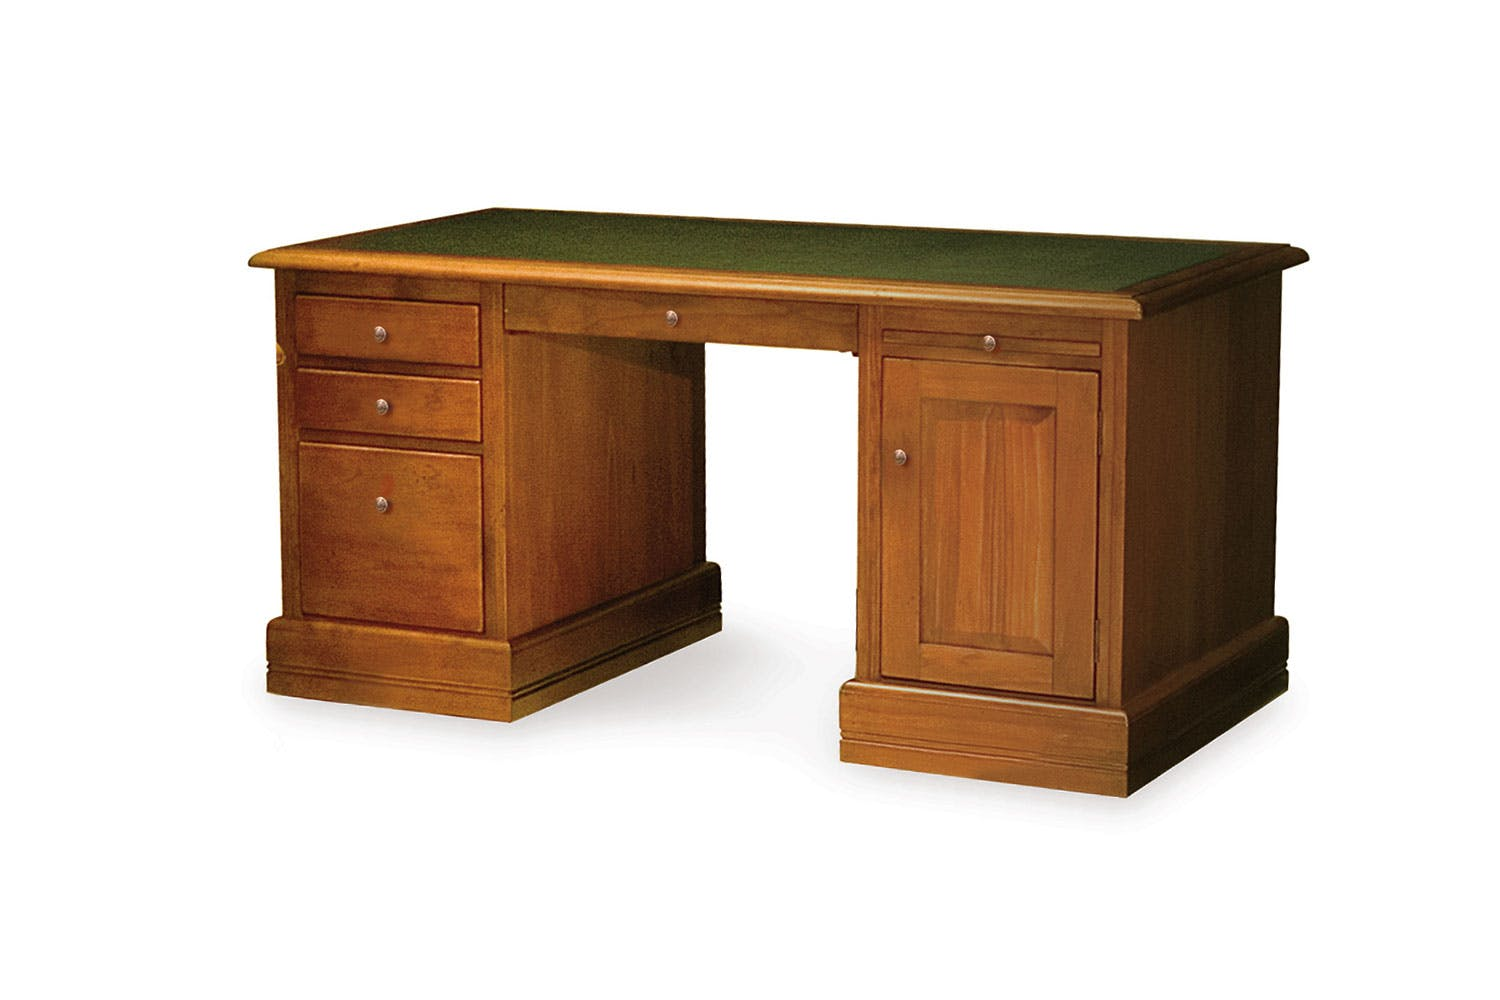 Image of Waihi Presidents Desk with Inlaid Top by Coastwood Furniture